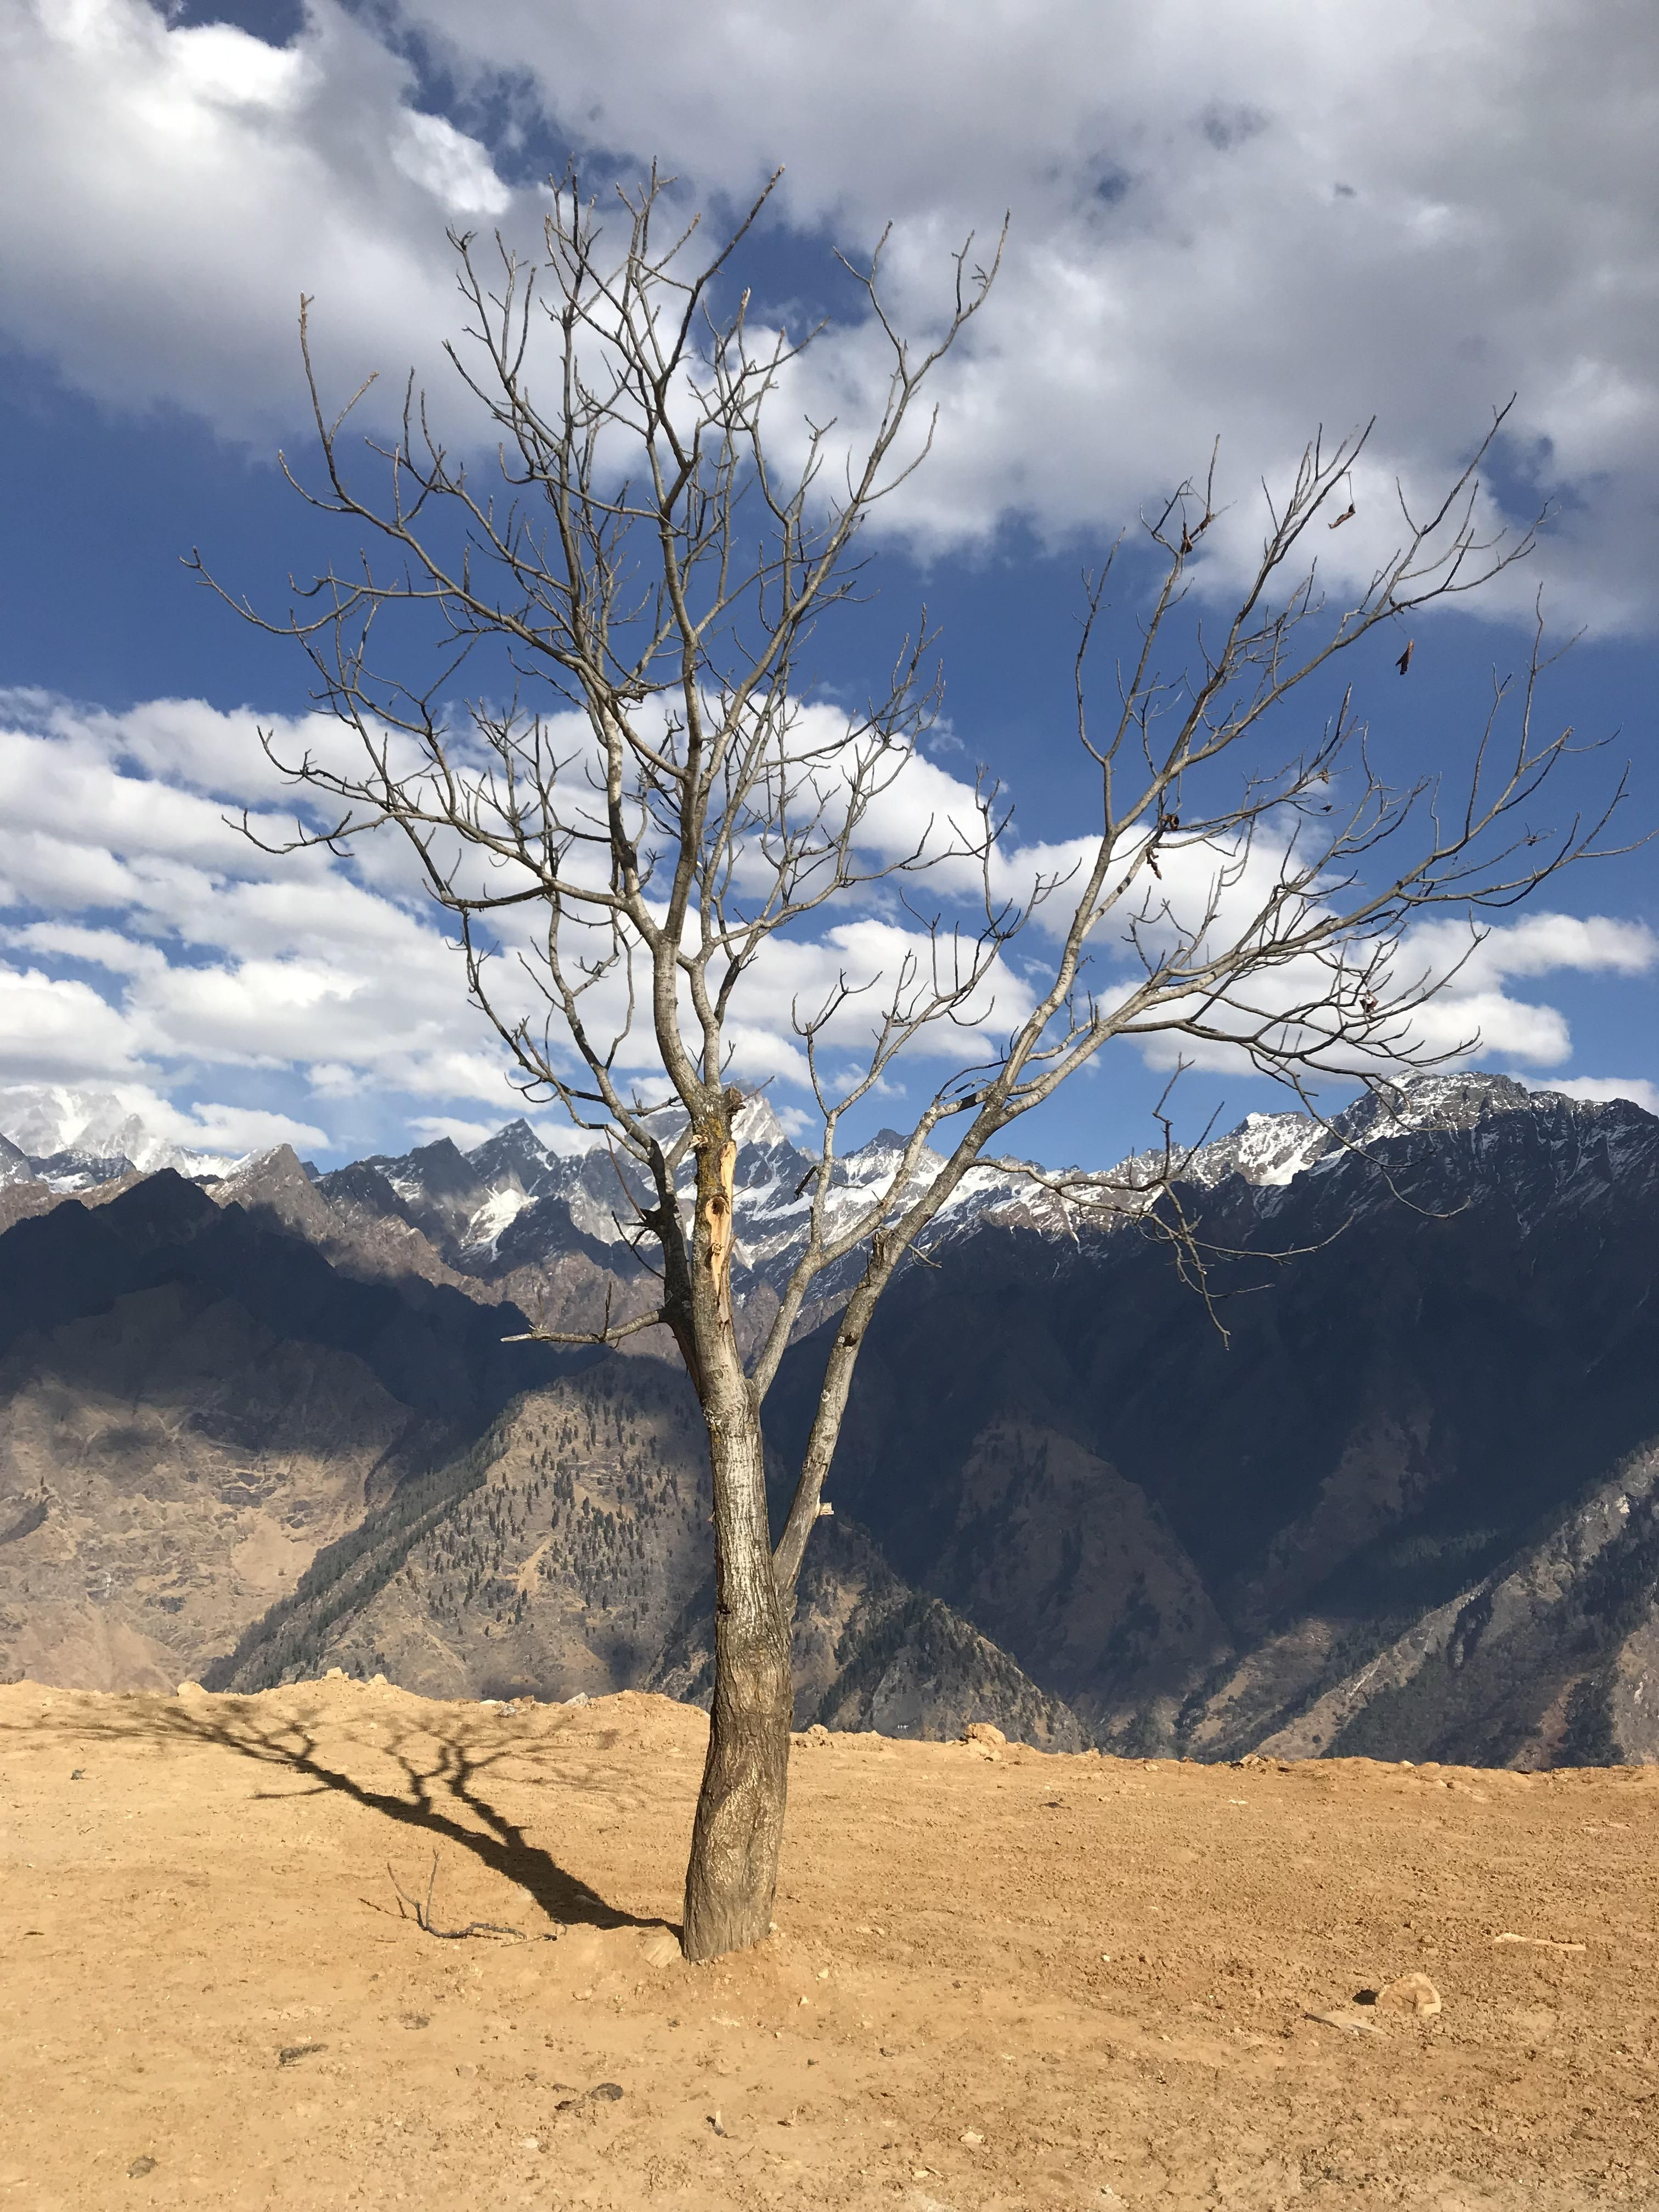 Barren lands, dead trees and blue skies. Nature's beauty is always  overwhelming [3024 x 4032] #nature and Science